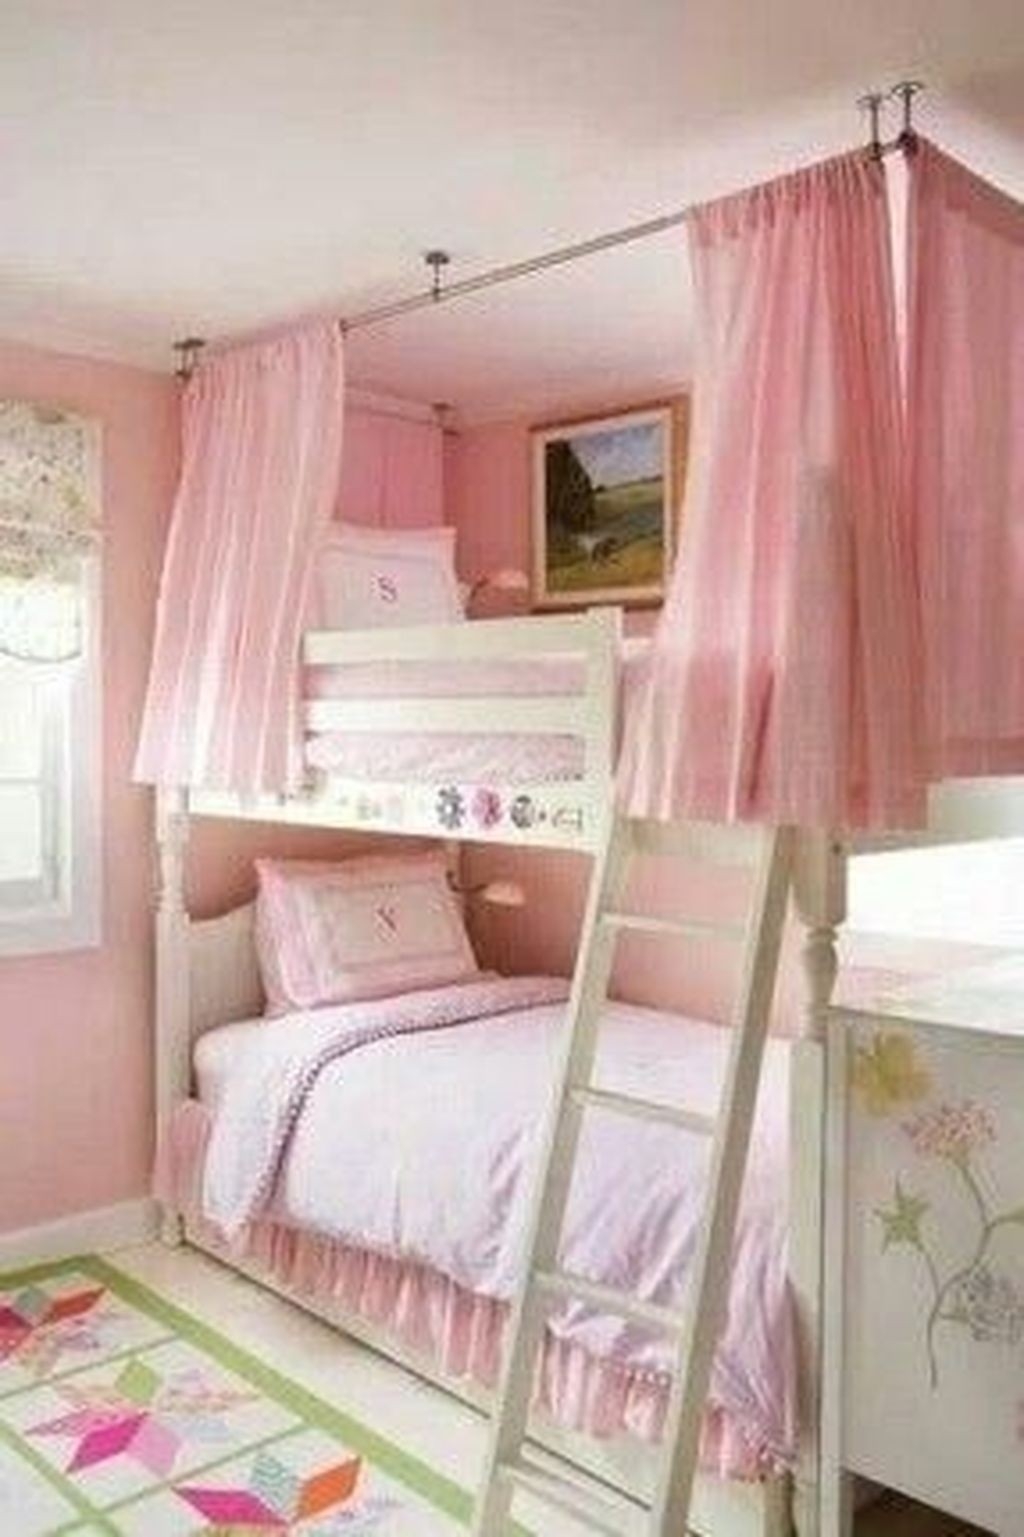 Tent bunk beds  sc 1 st  Foter & Tent Bunk Beds - Ideas on Foter